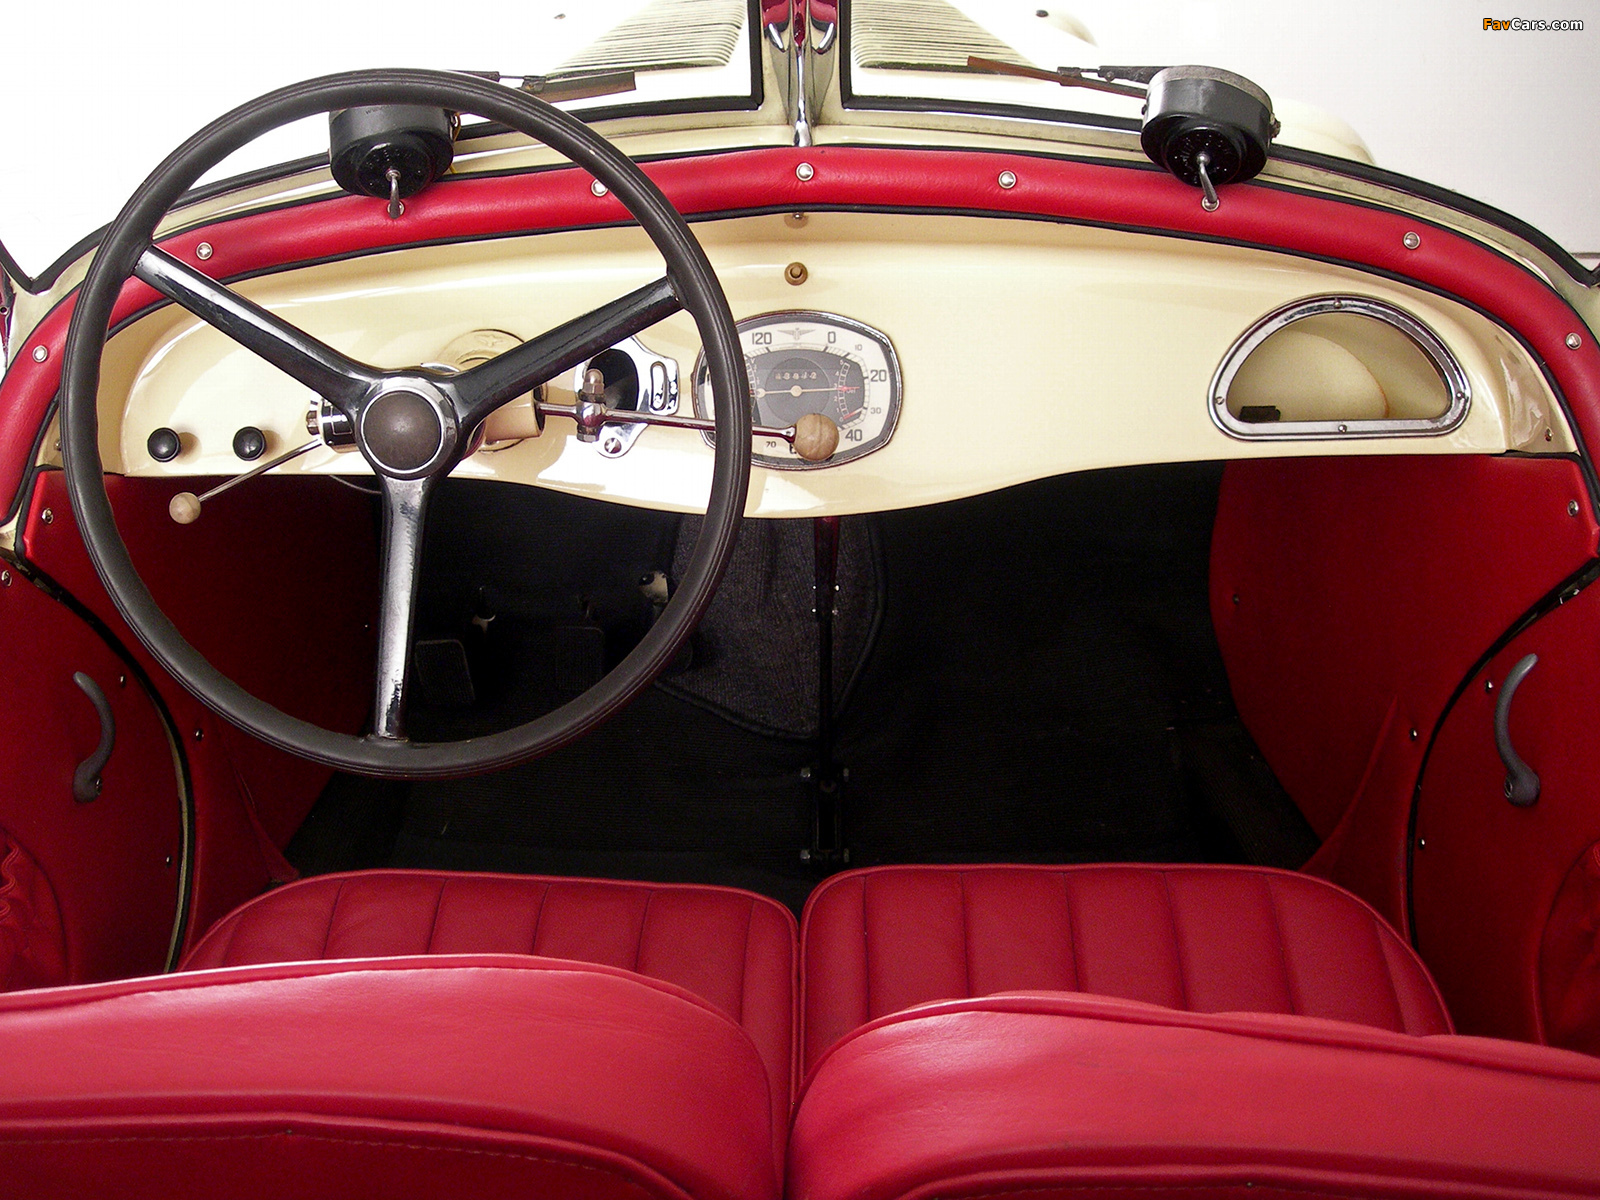 B4hd also Alfa Romeo 156 Gta Pictures as well Pictures Adler Trumpf Junior Sport Roadster 1935 1937 17853 together with Car Floor Lights in addition Bnsf Ex Santa Fe Dash 8 40cw 838. on car dash